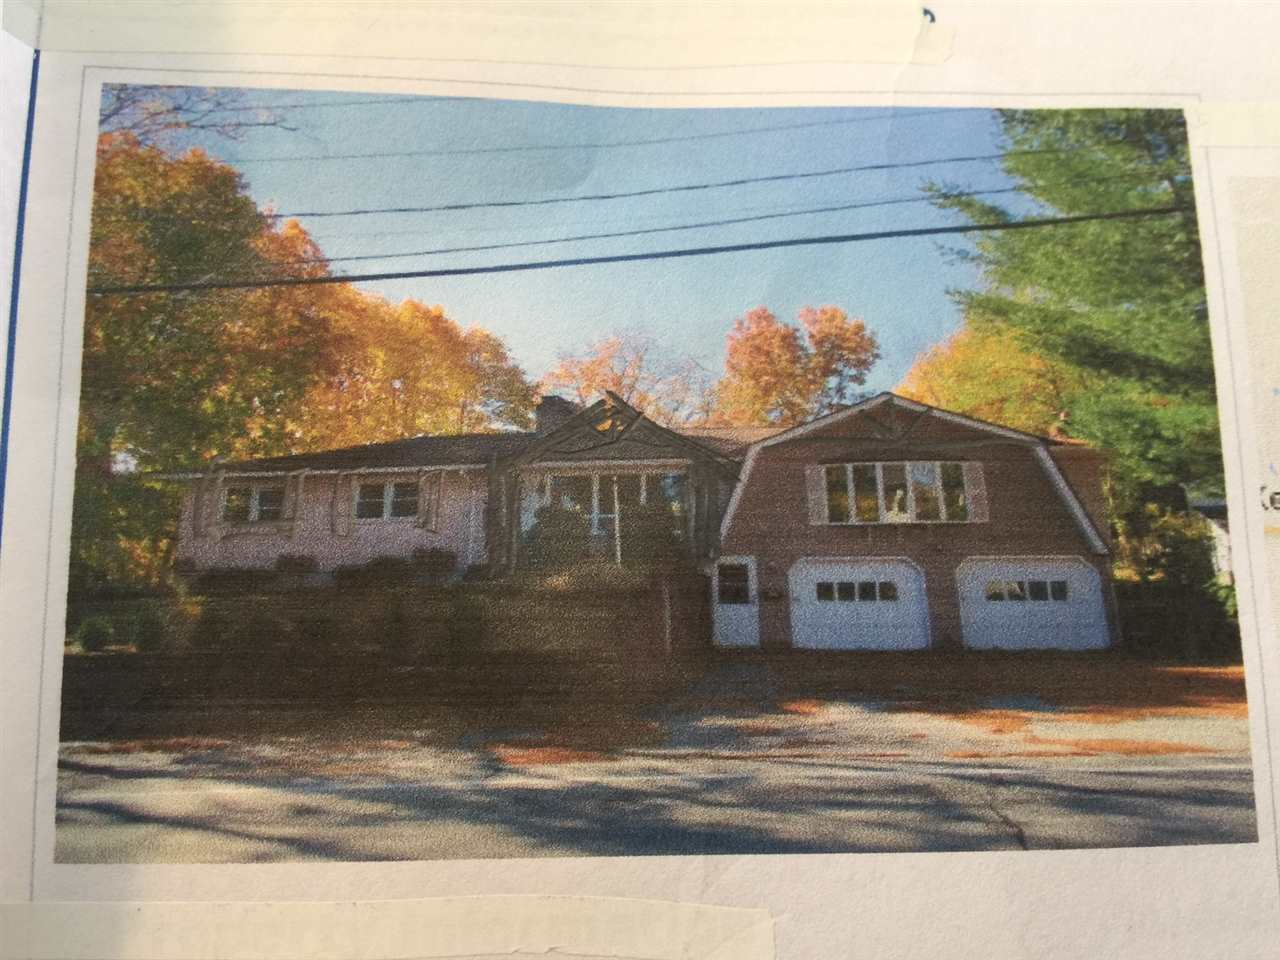 Photo of 486 Rockland Ave Goffstown NH 03045